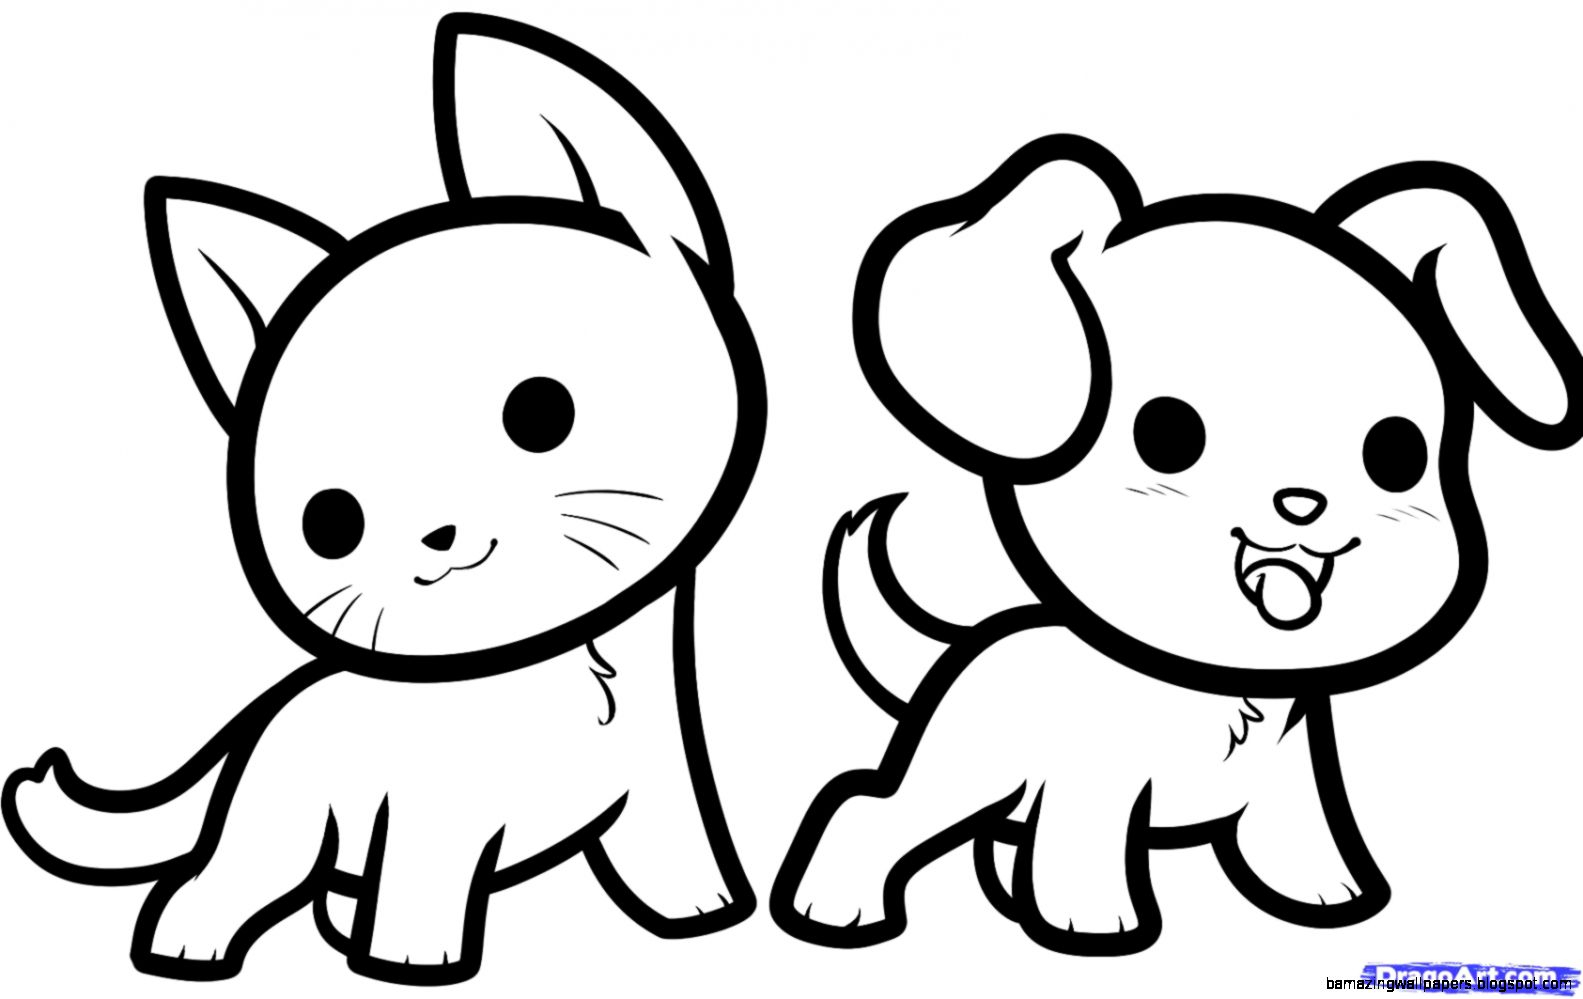 Cute Animal Drawing Ideas At Getdrawings Com Free For Personal Use